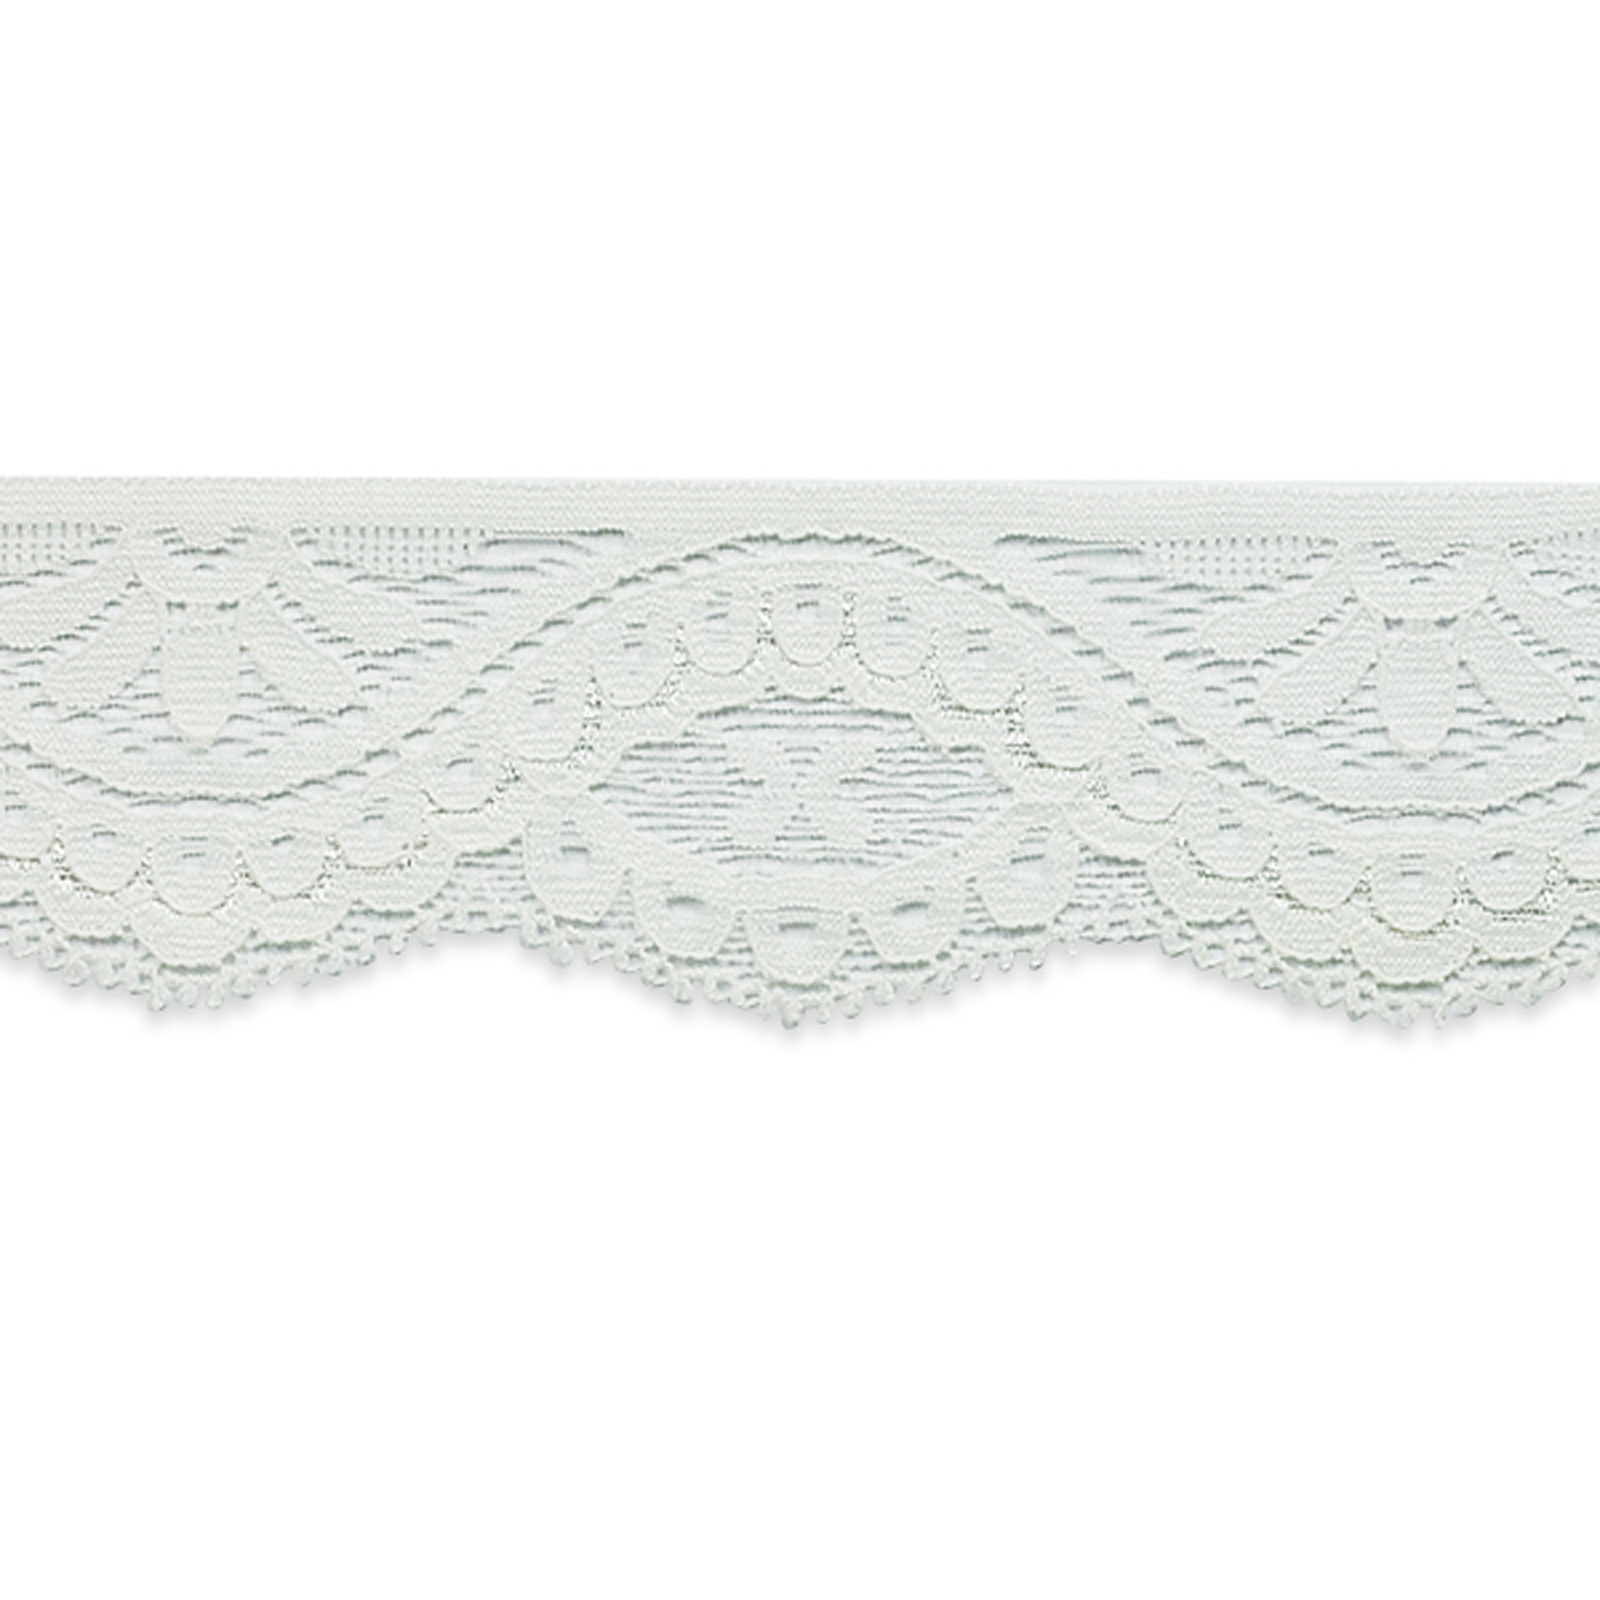 1 3/4'' Alexa Stretch Lace Trim Ivory by Expo in USA